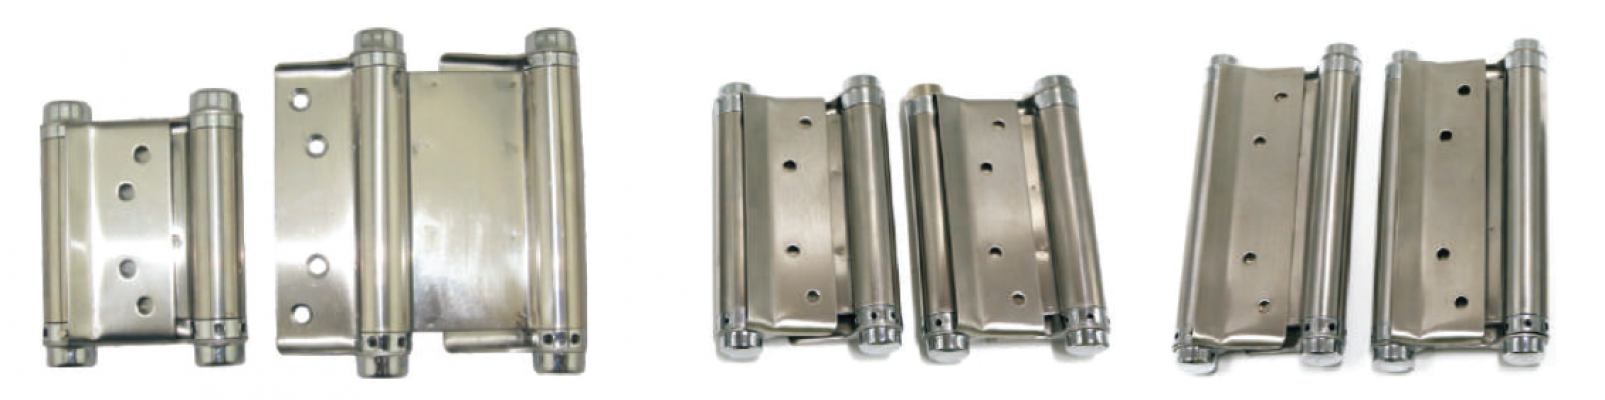 STAINLESS STEEL DOUBLE ACTION HINGE